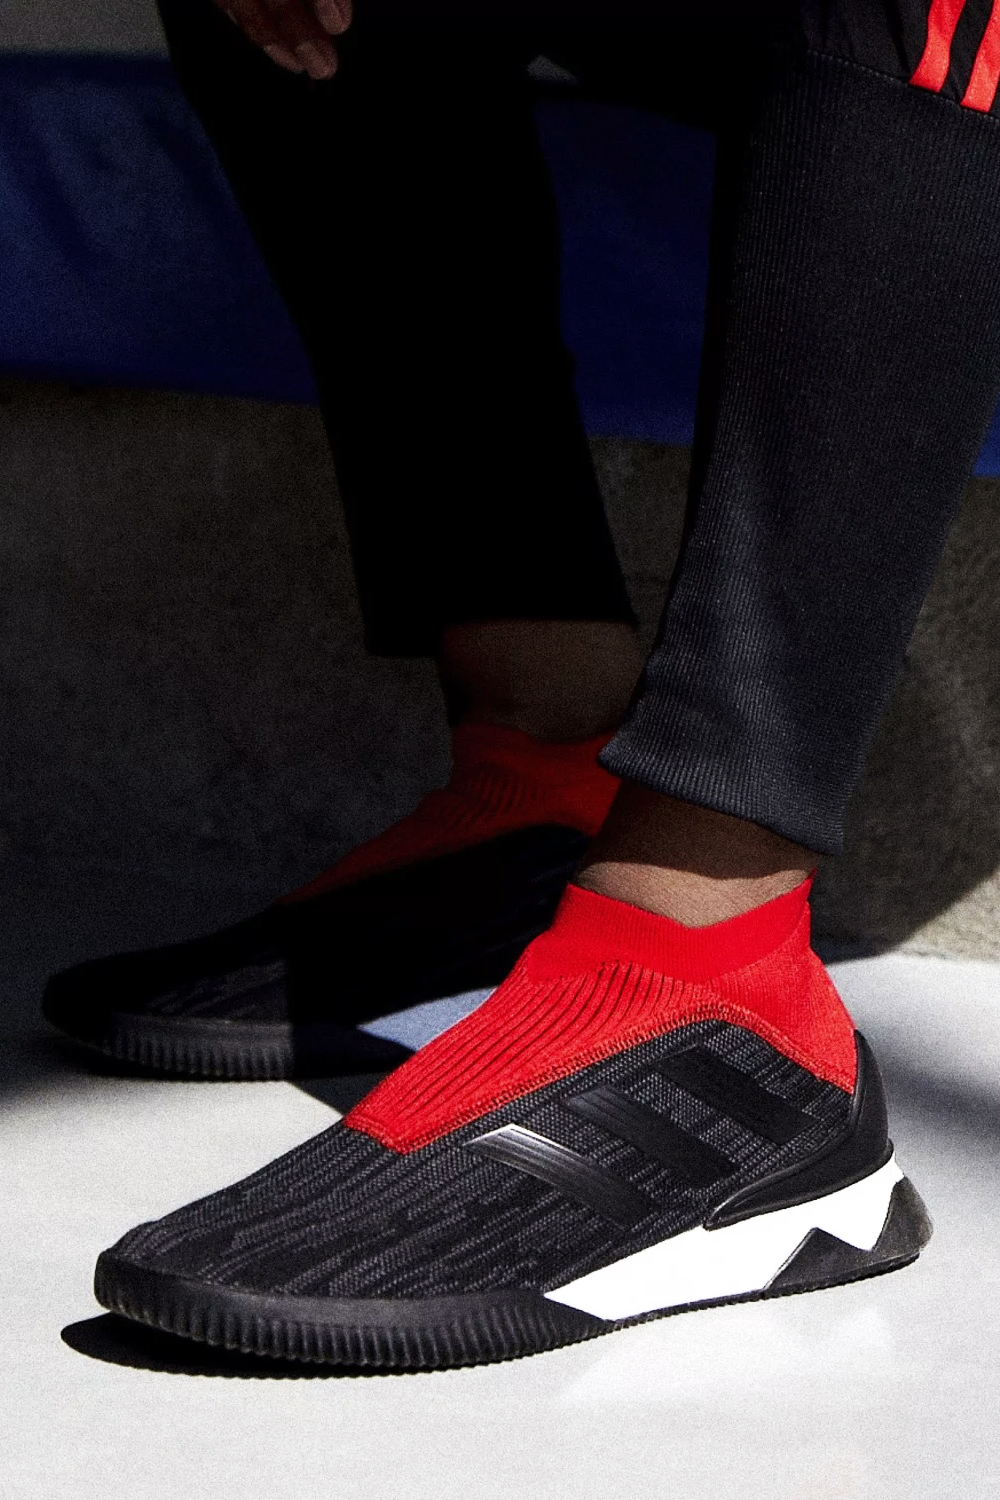 adidas Football Predator Tango 18+ TR Release Details Shoes Trainers Sneakers Kicks Cop Purchase Buy Red Black White Colorway